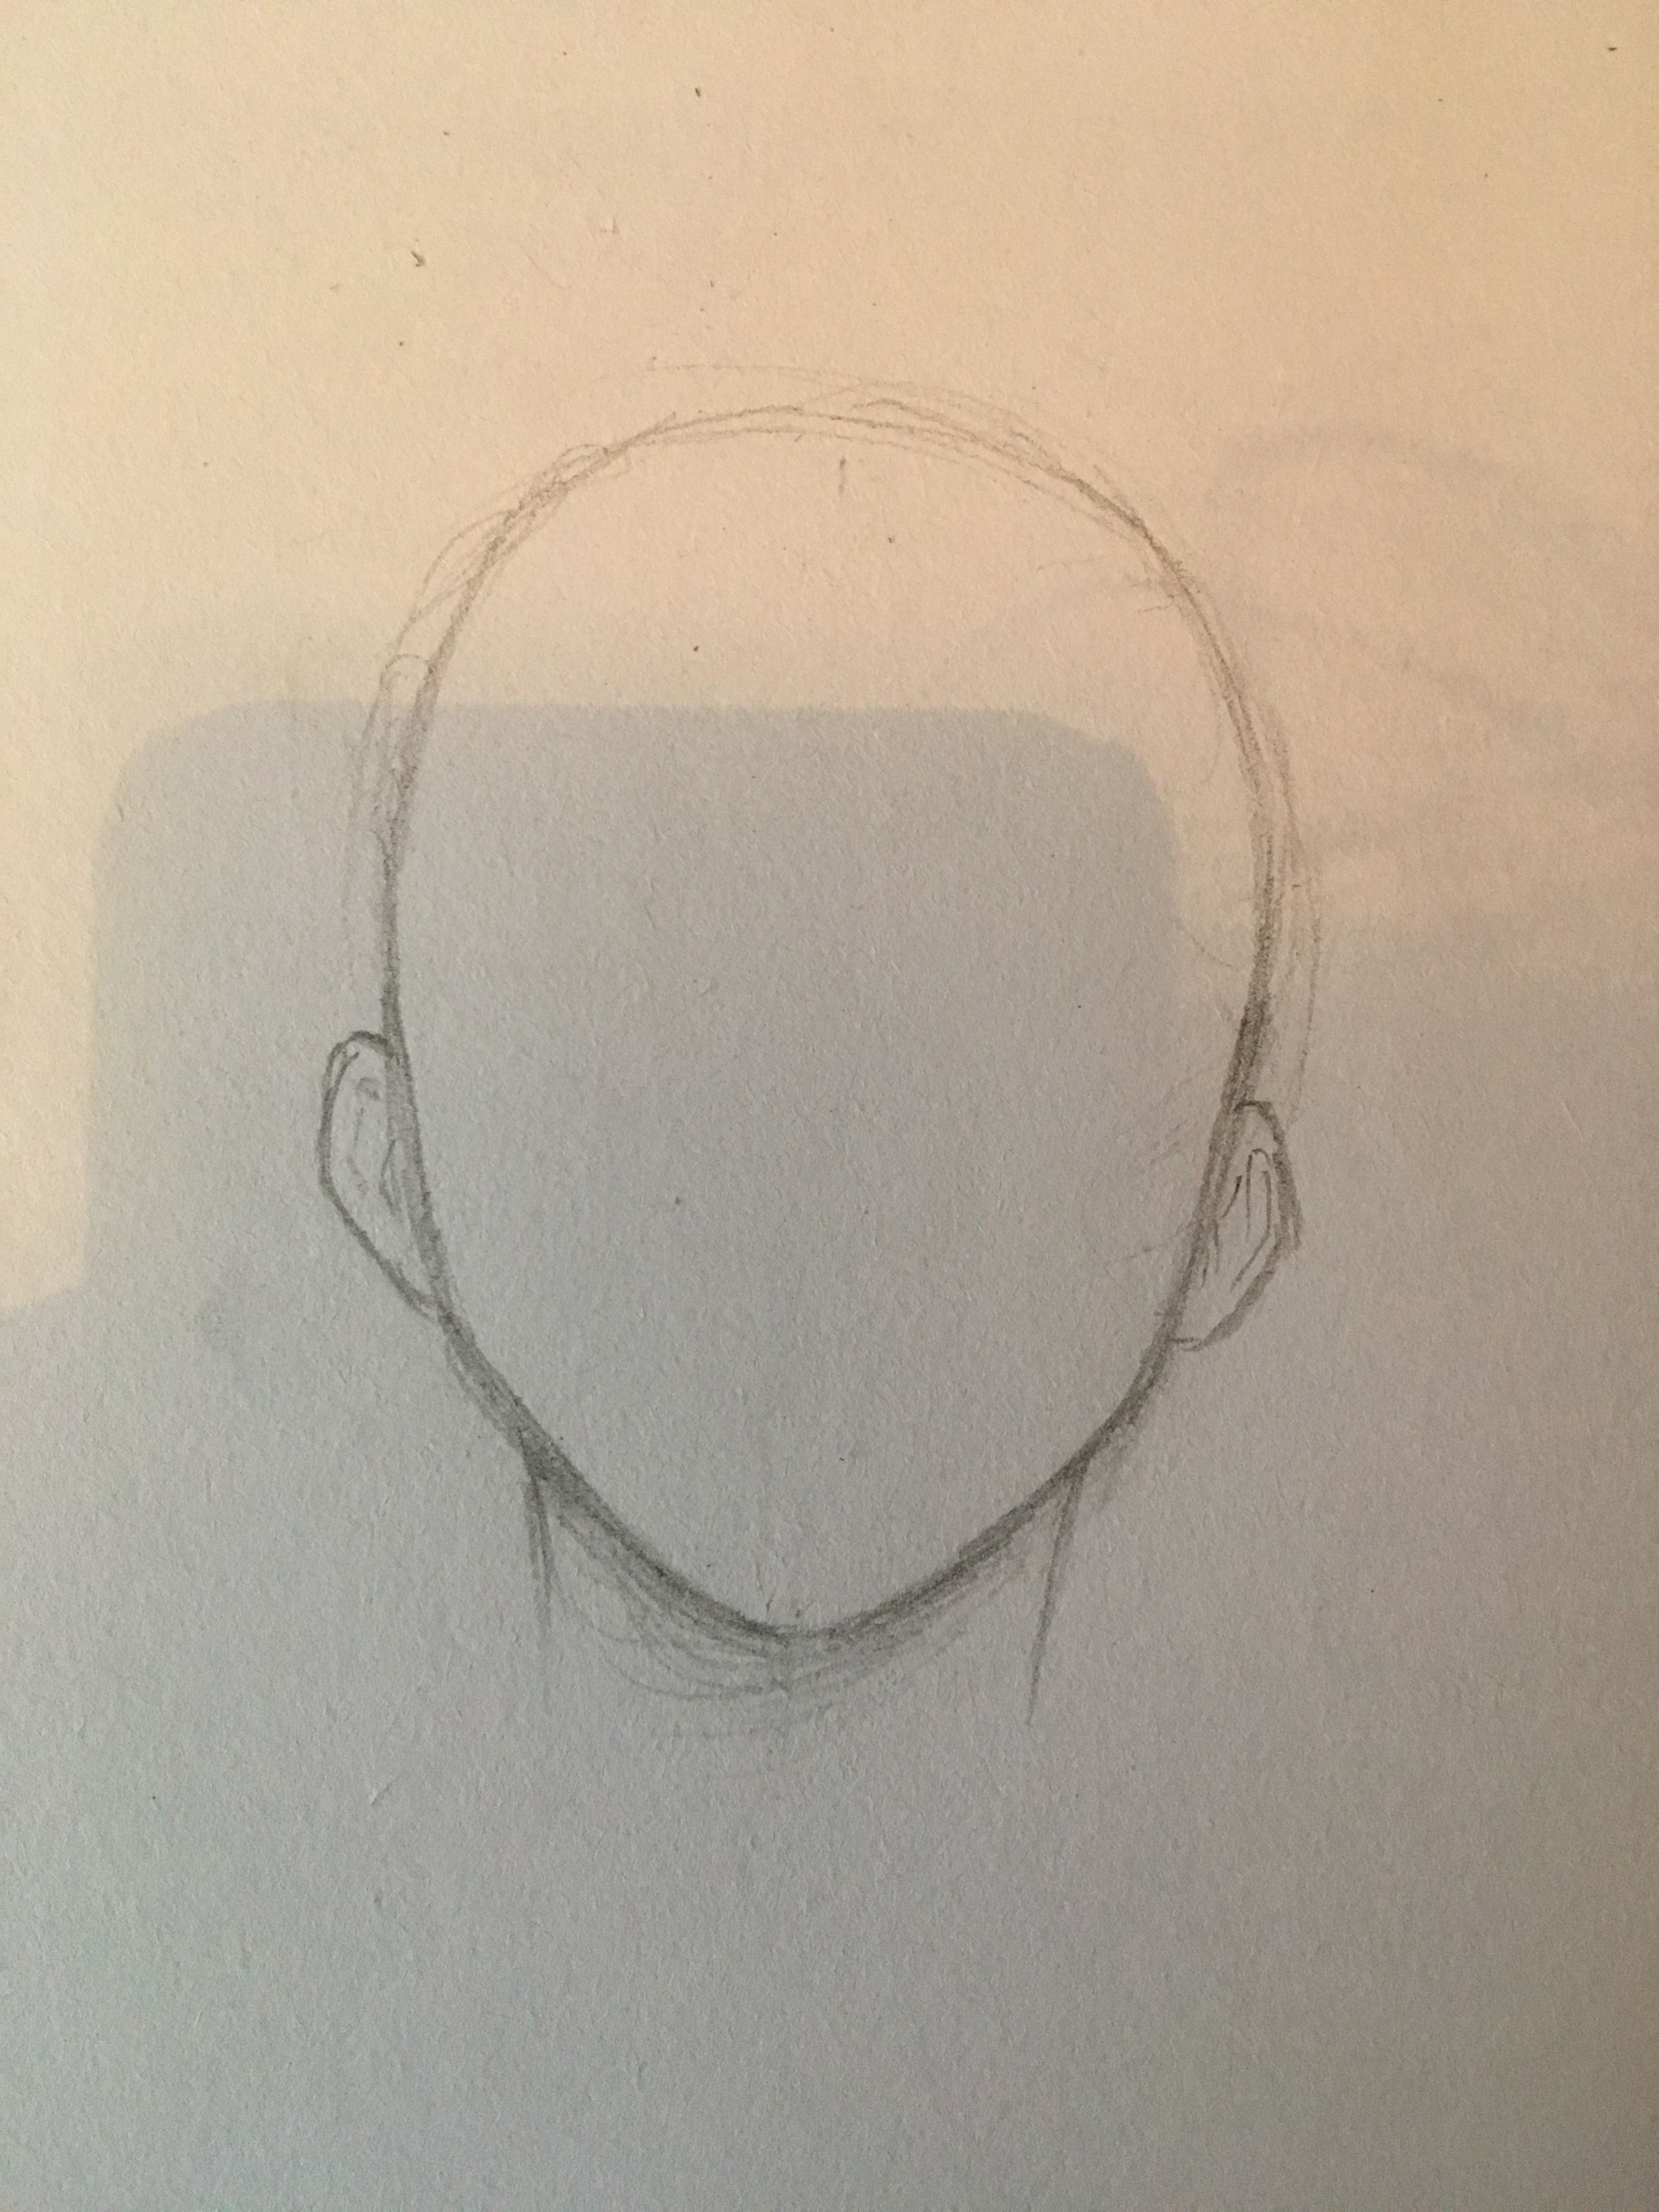 Basic Front Anime Head Shape For Anatomy Anime Head Shapes Drawing Heads Drawings